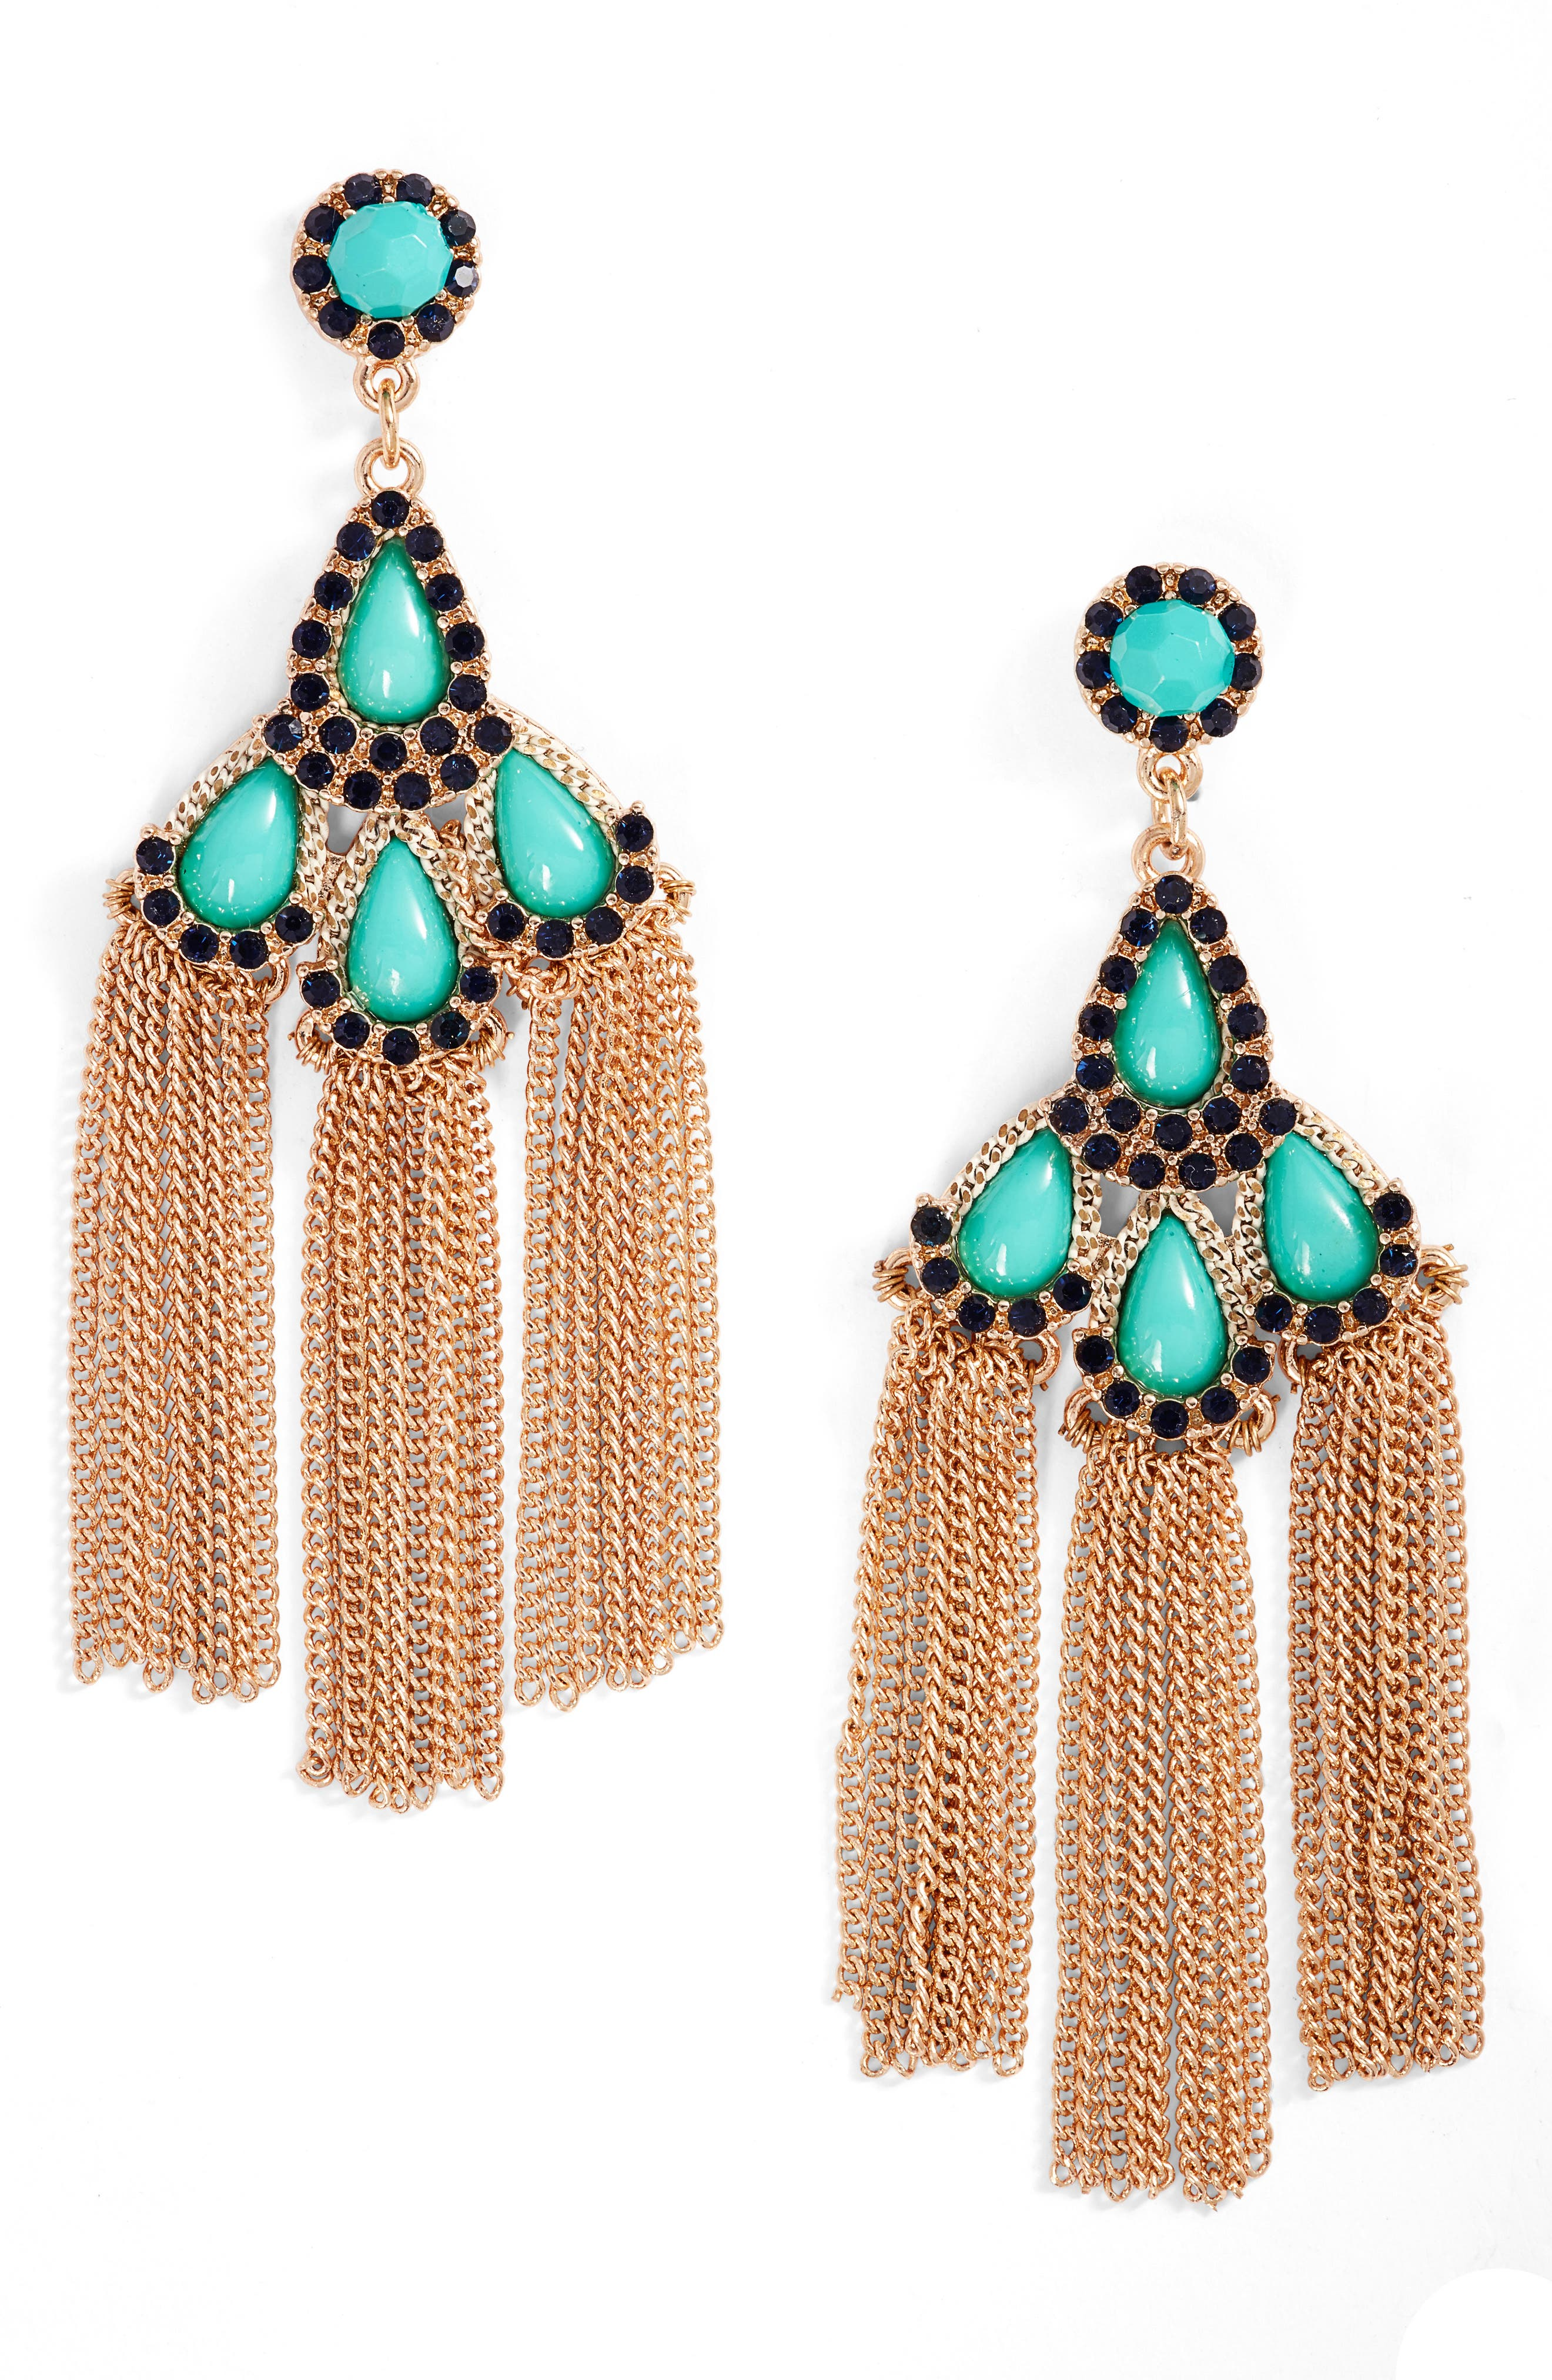 Main Image - Adia Kibur Chain Fringe Drop Earrings